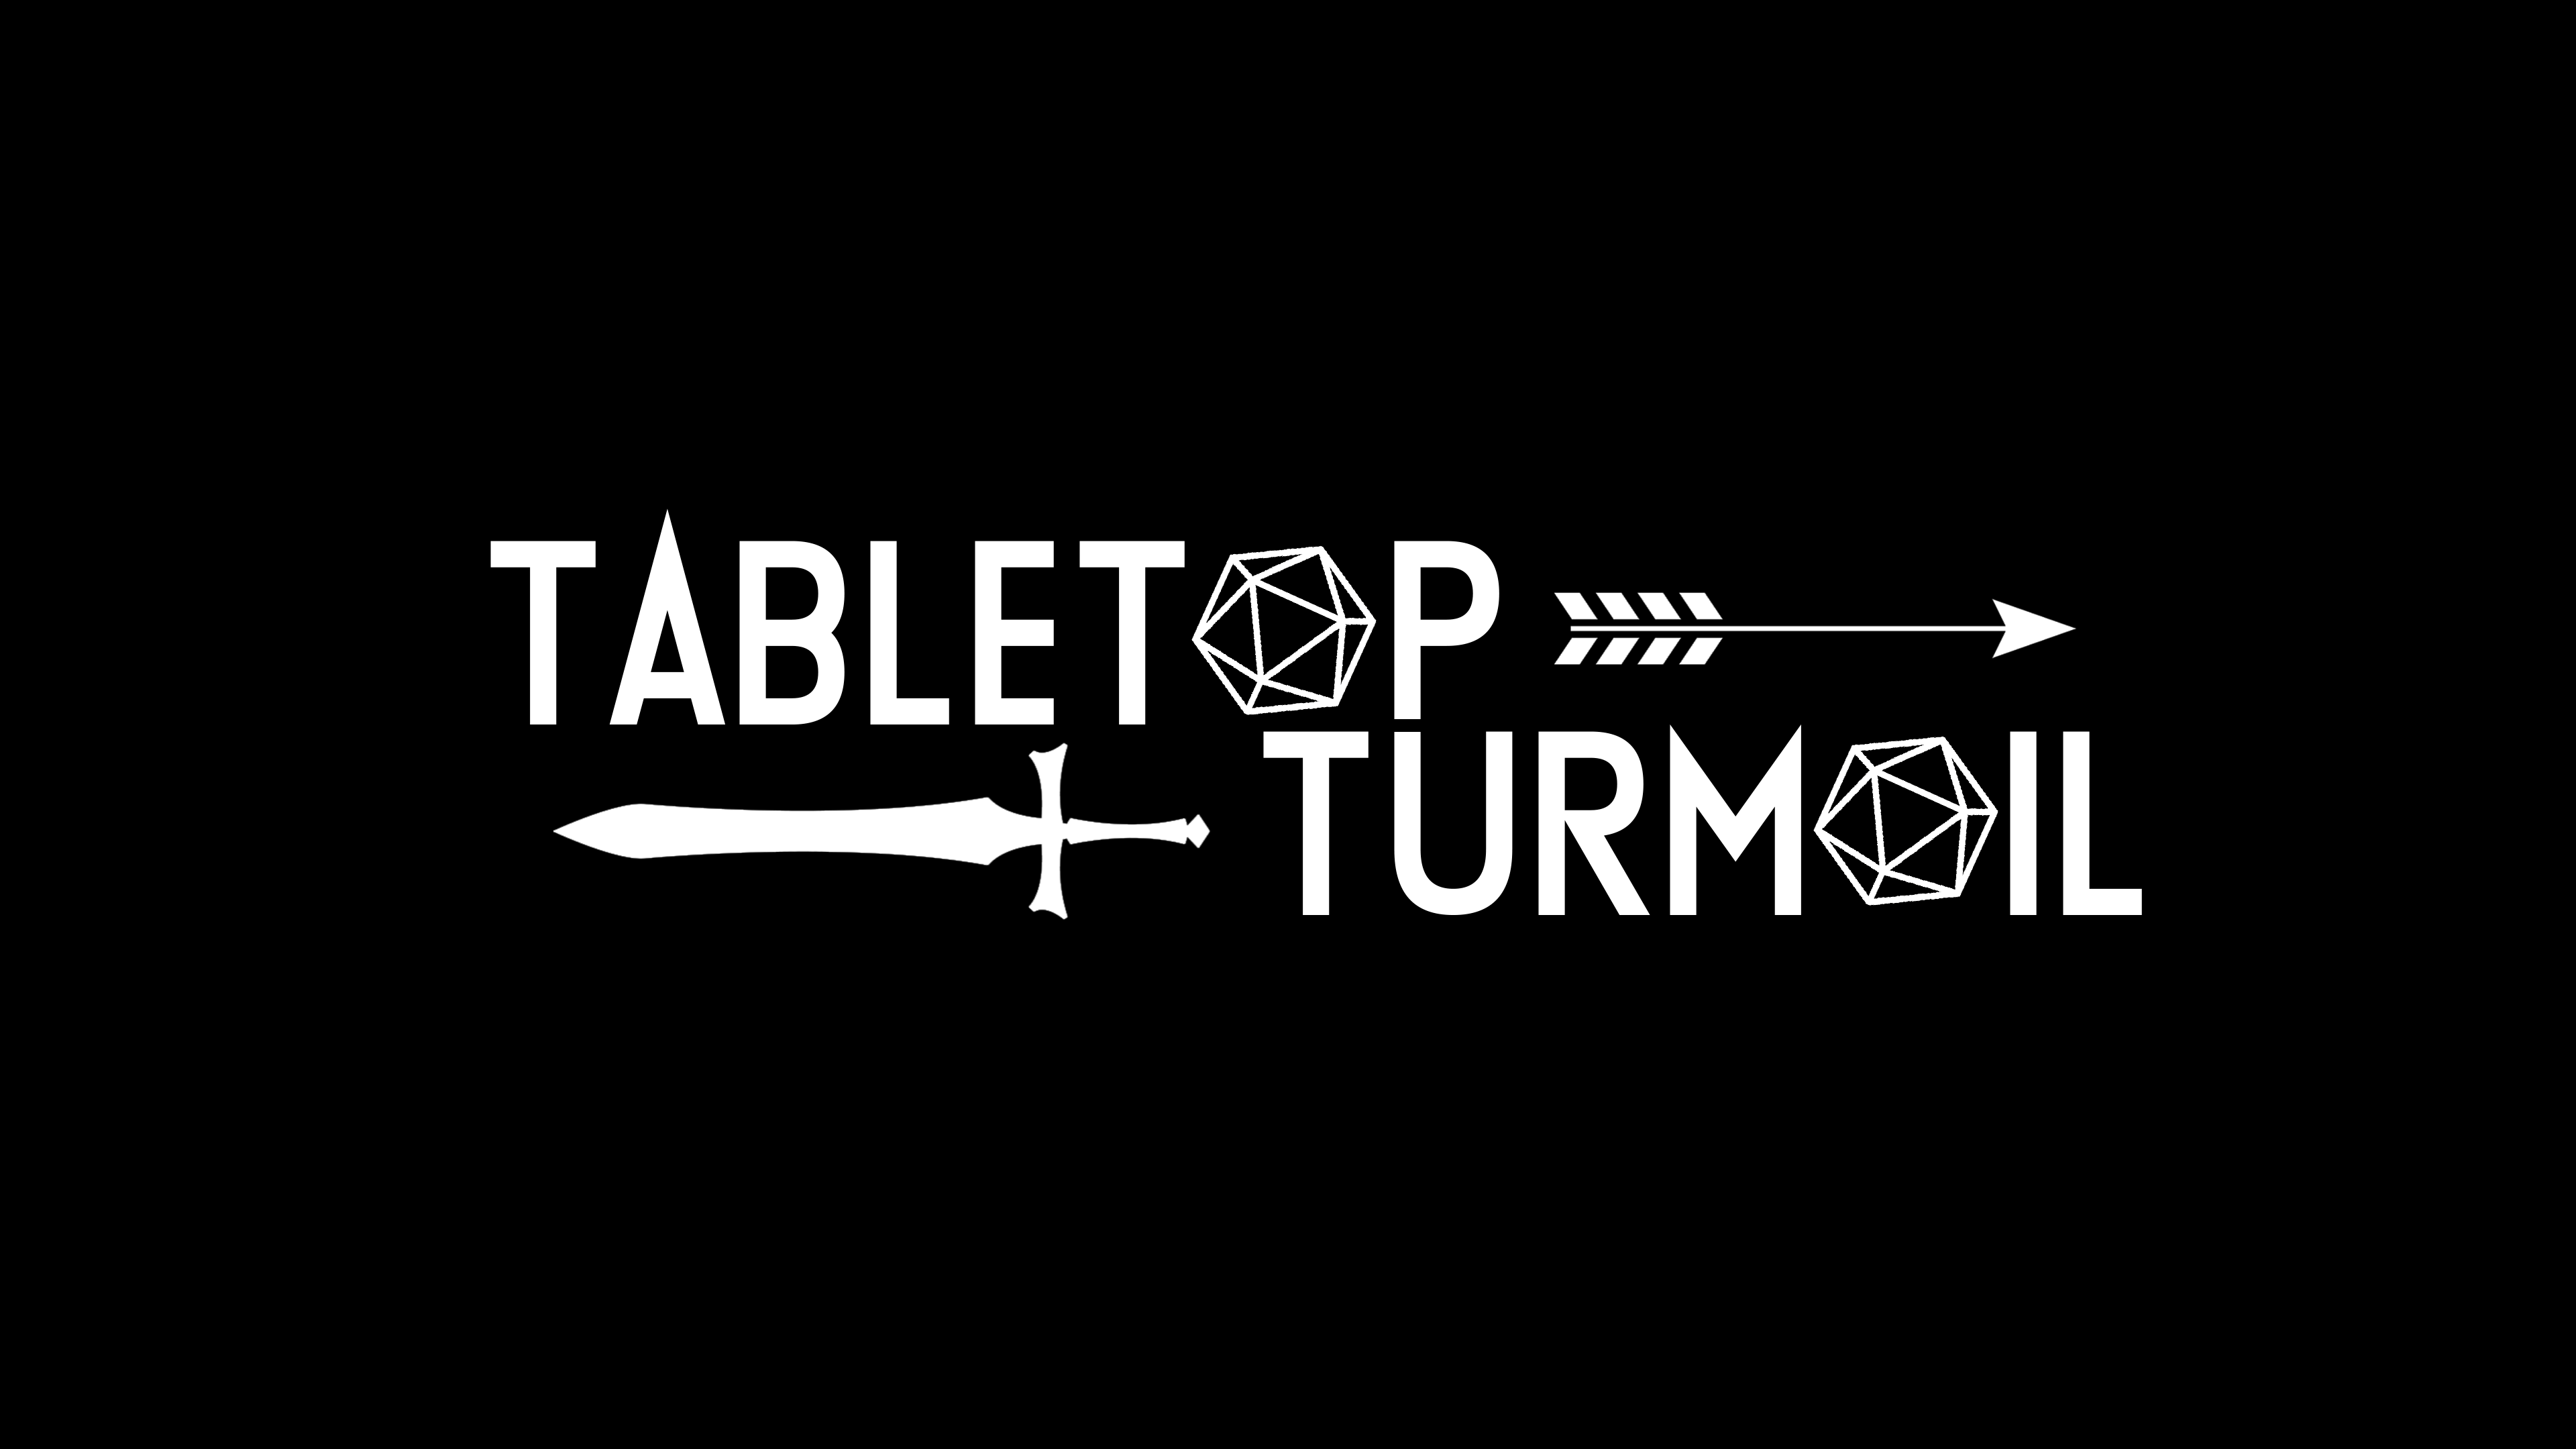 tabletopturmoil